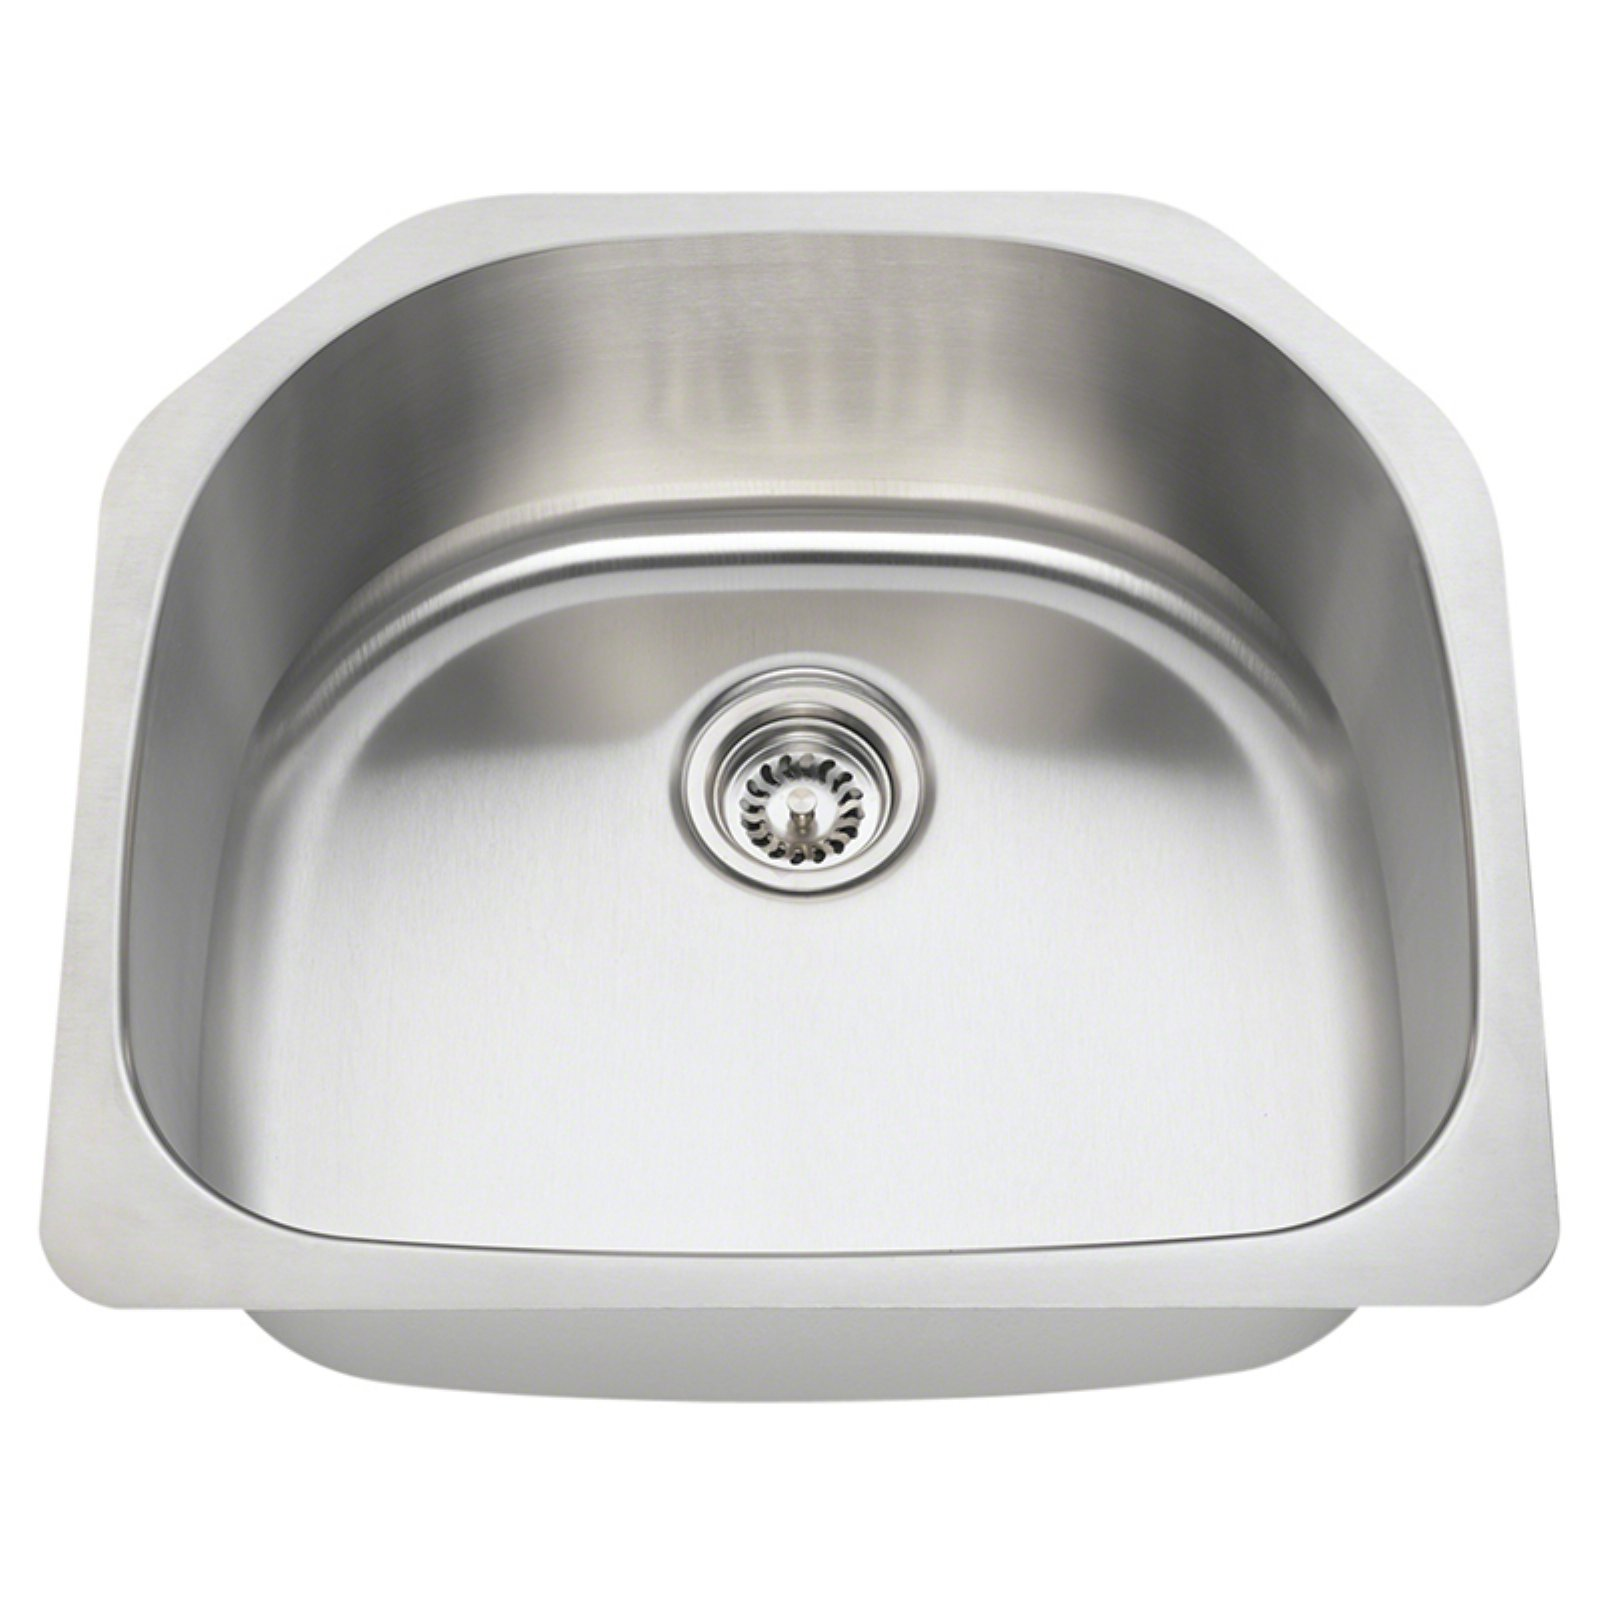 Polaris Sinks P1242 Single Basin Undermount Kitchen Sink